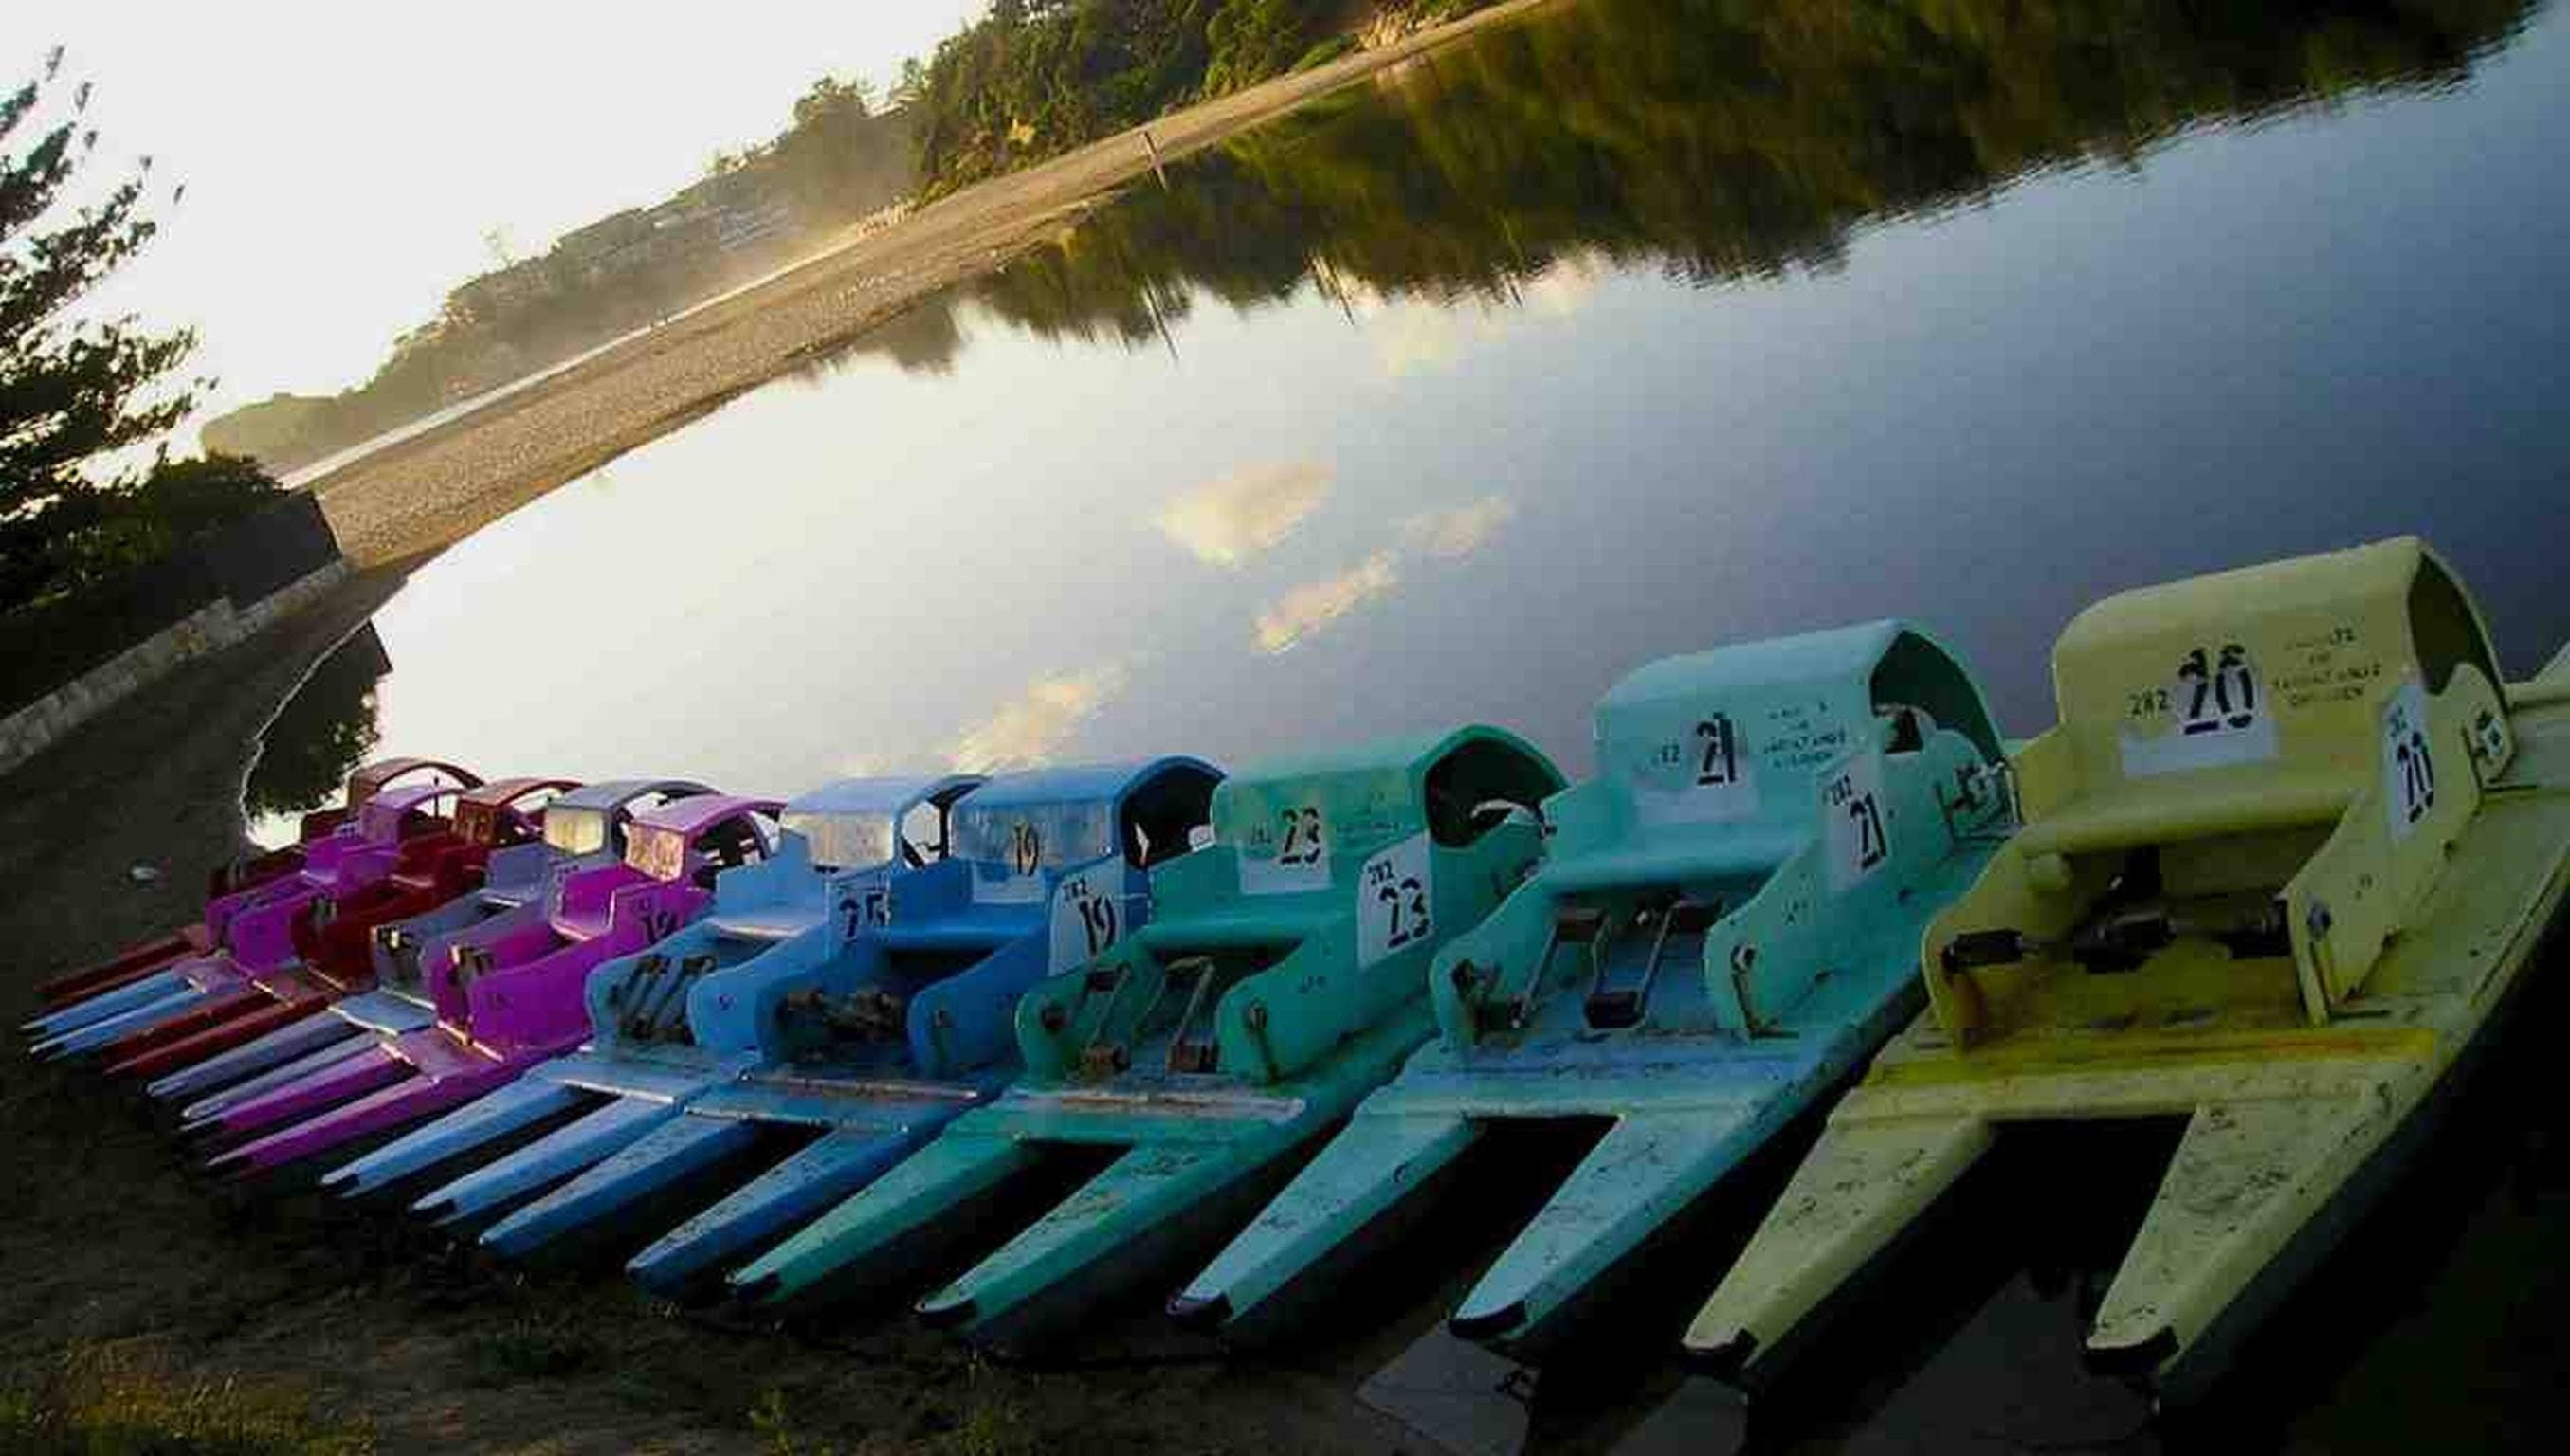 Terrigal Paddle Boats and Stand Up Paddle Boards - Tourism TAS